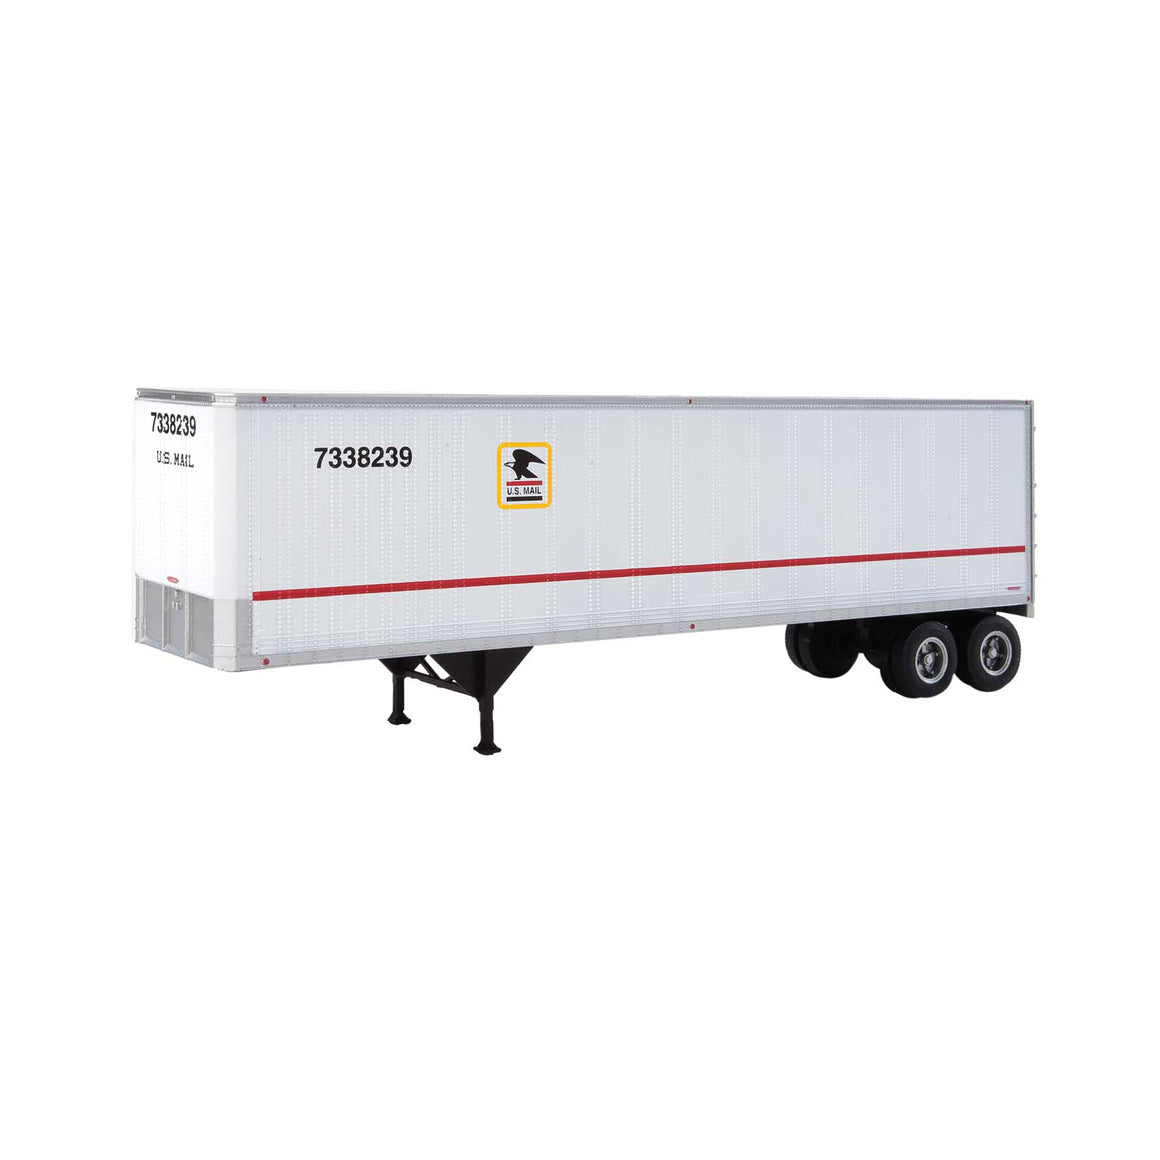 HO Scale: 40' Trailmobile Trailer - United States Postal Service - 2-Pack